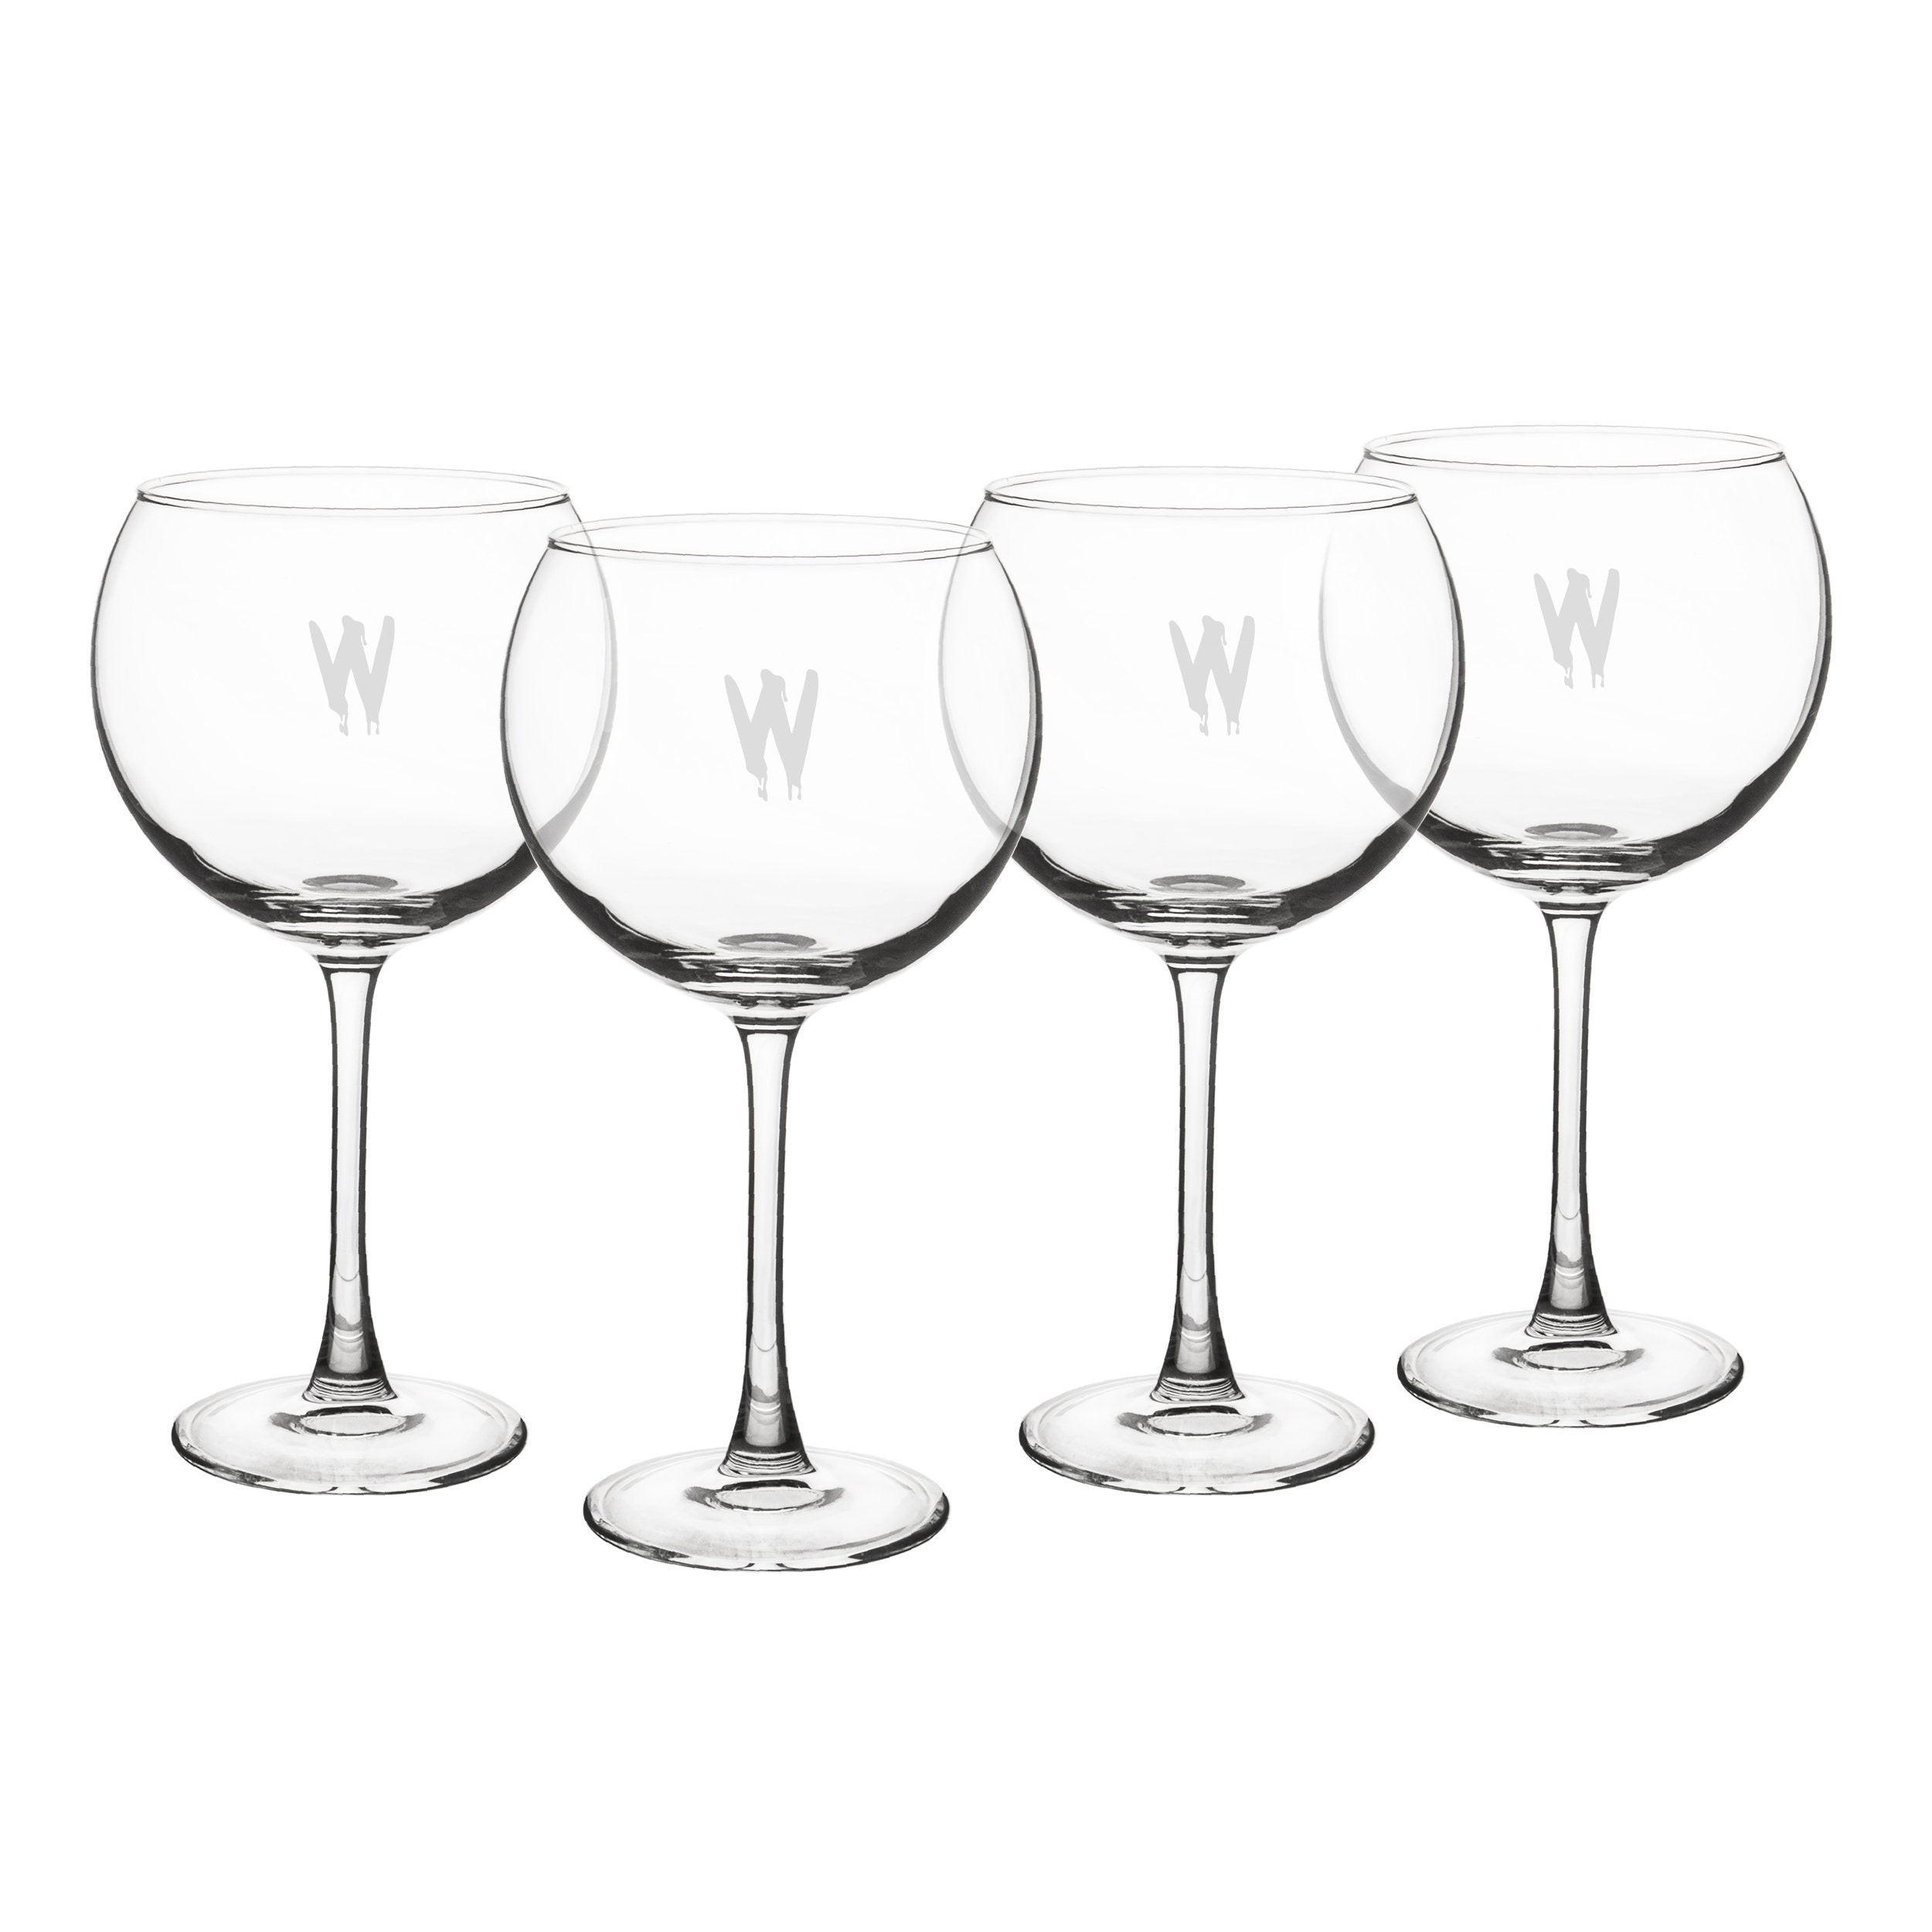 Cathy's Concepts Personalized Spooky Red Wine Glasses, Set of 4, Letter W